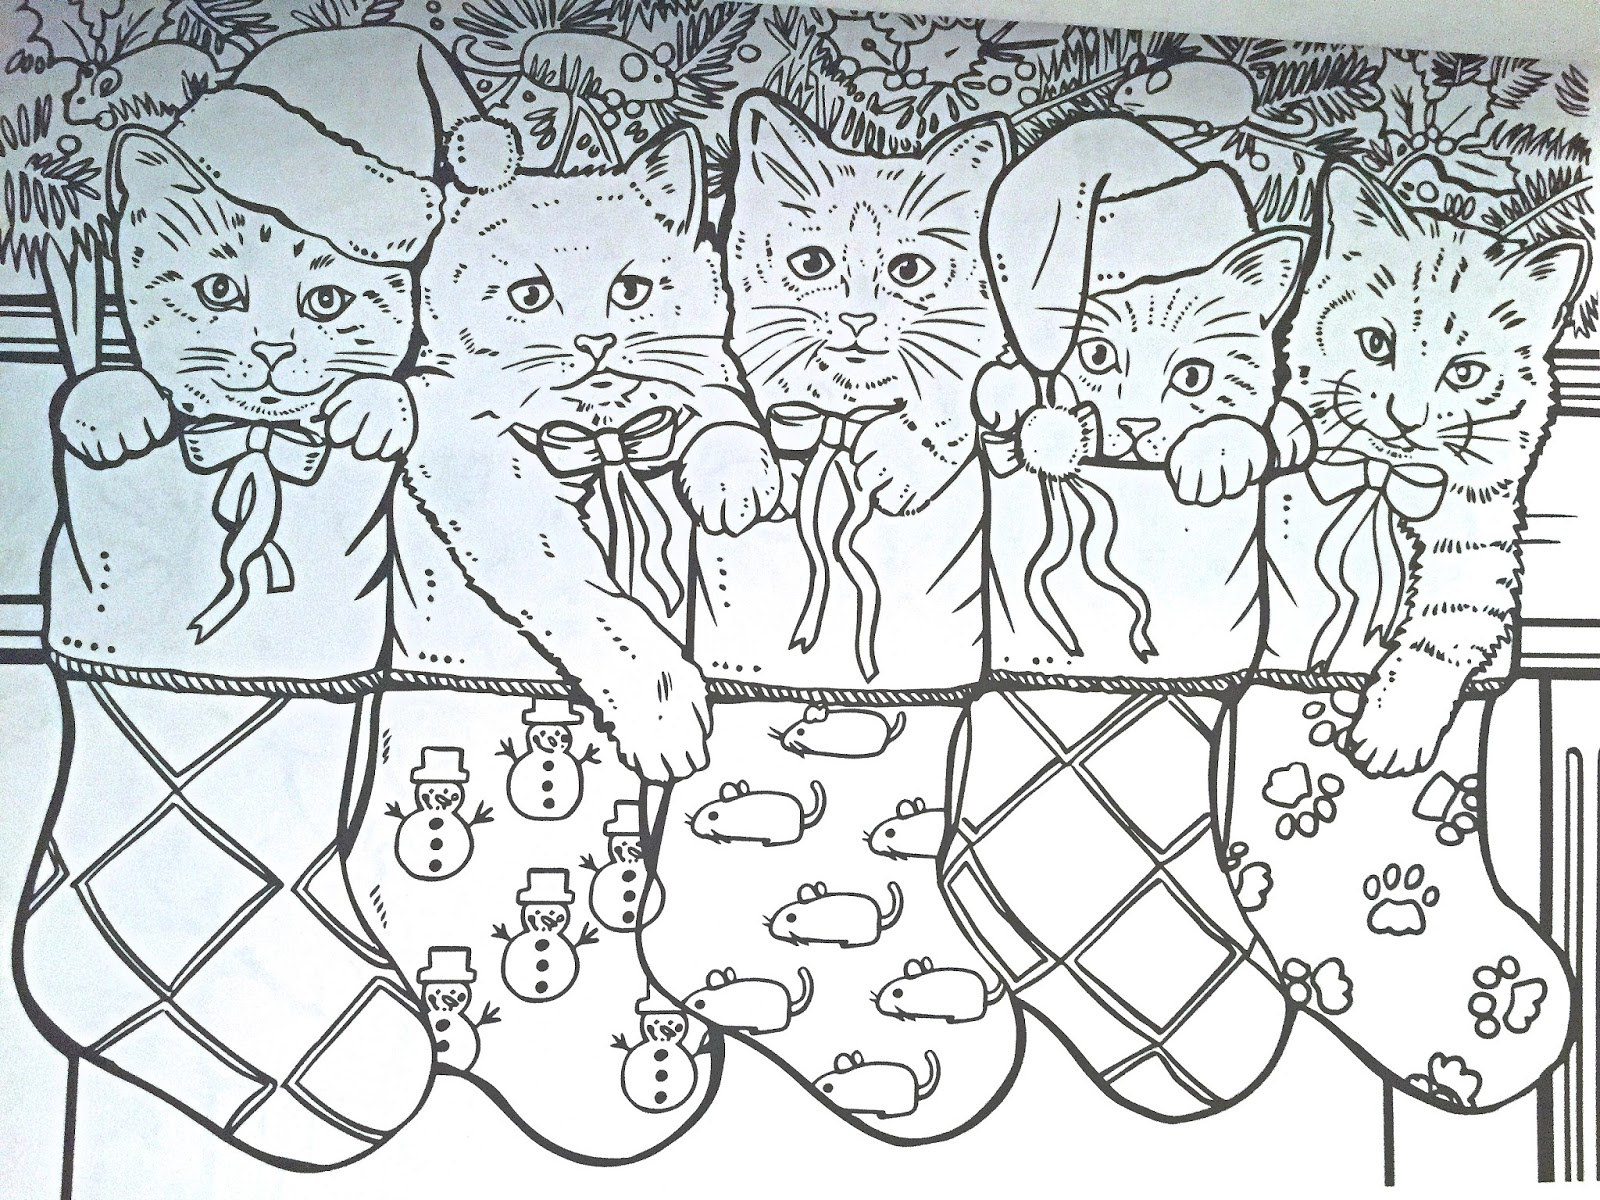 with this heartwarming coloring book featuring happy pets in festive settings feel the stress of the holidays vanish as you focus your your mind on the